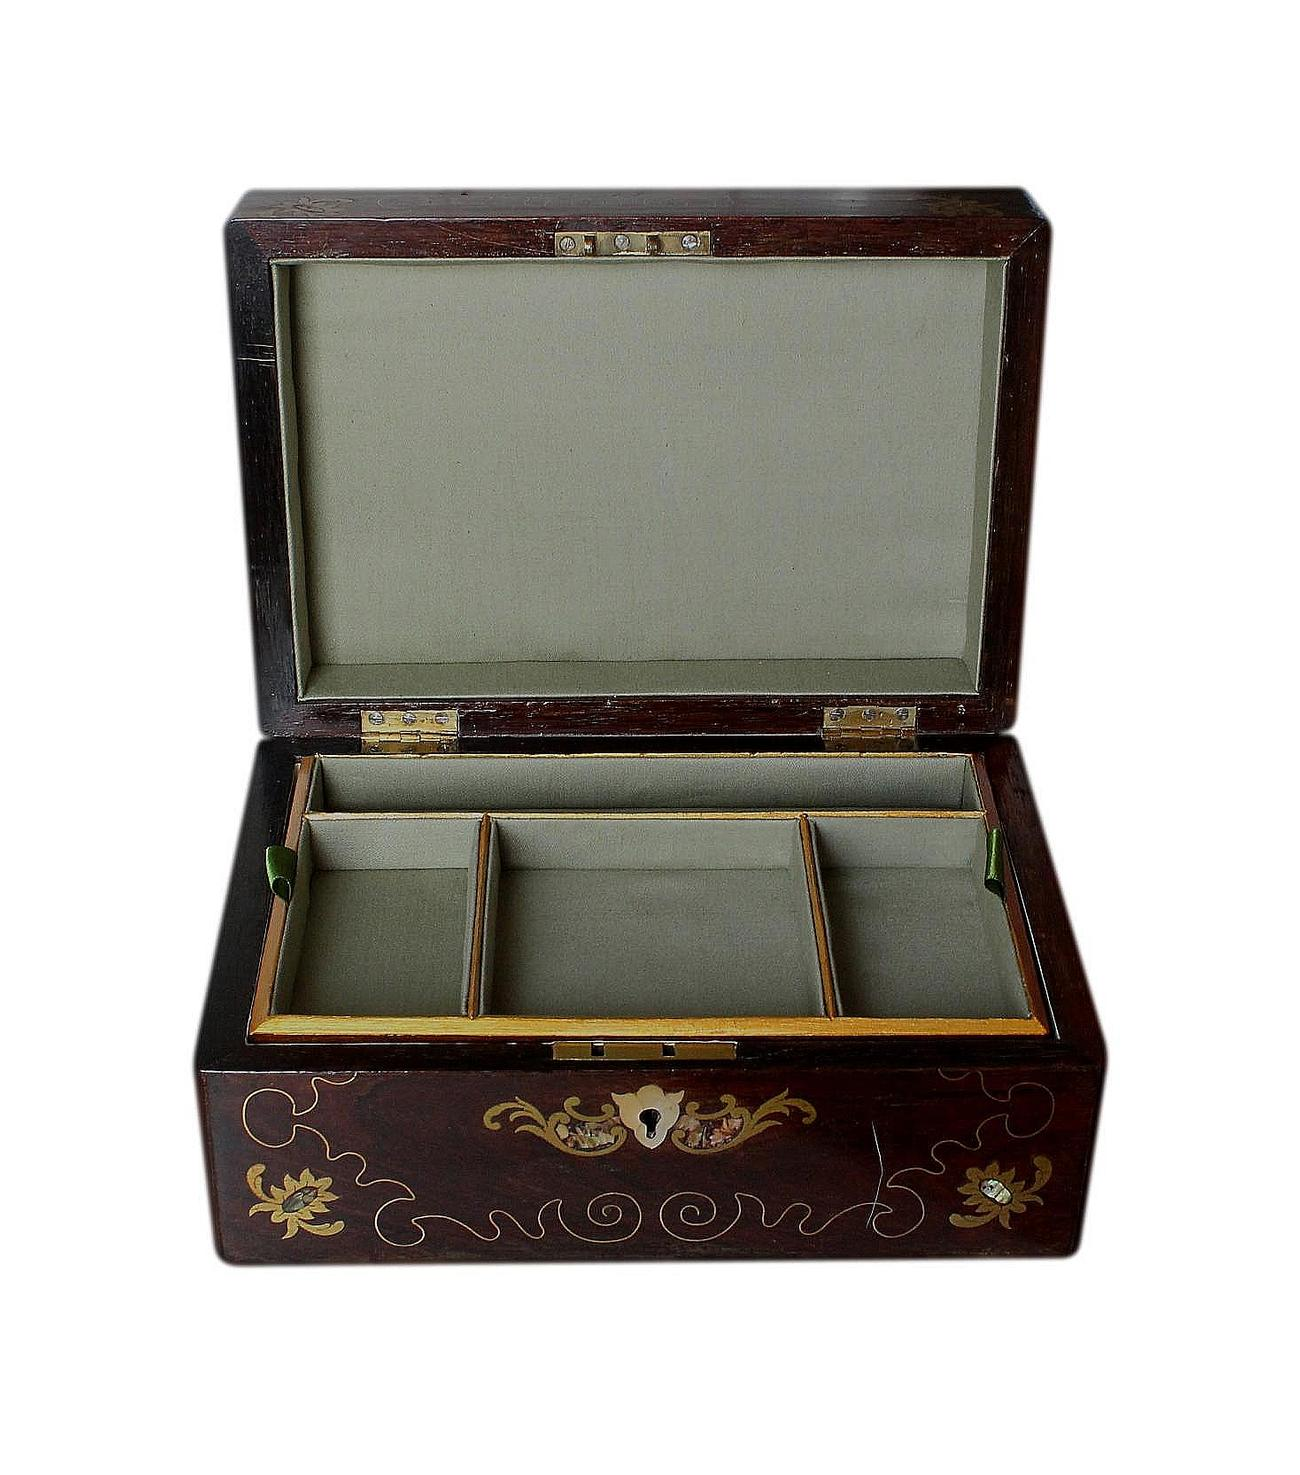 Ornate_inlaid_antique_Rosewood_jewellery_box_4.jpg